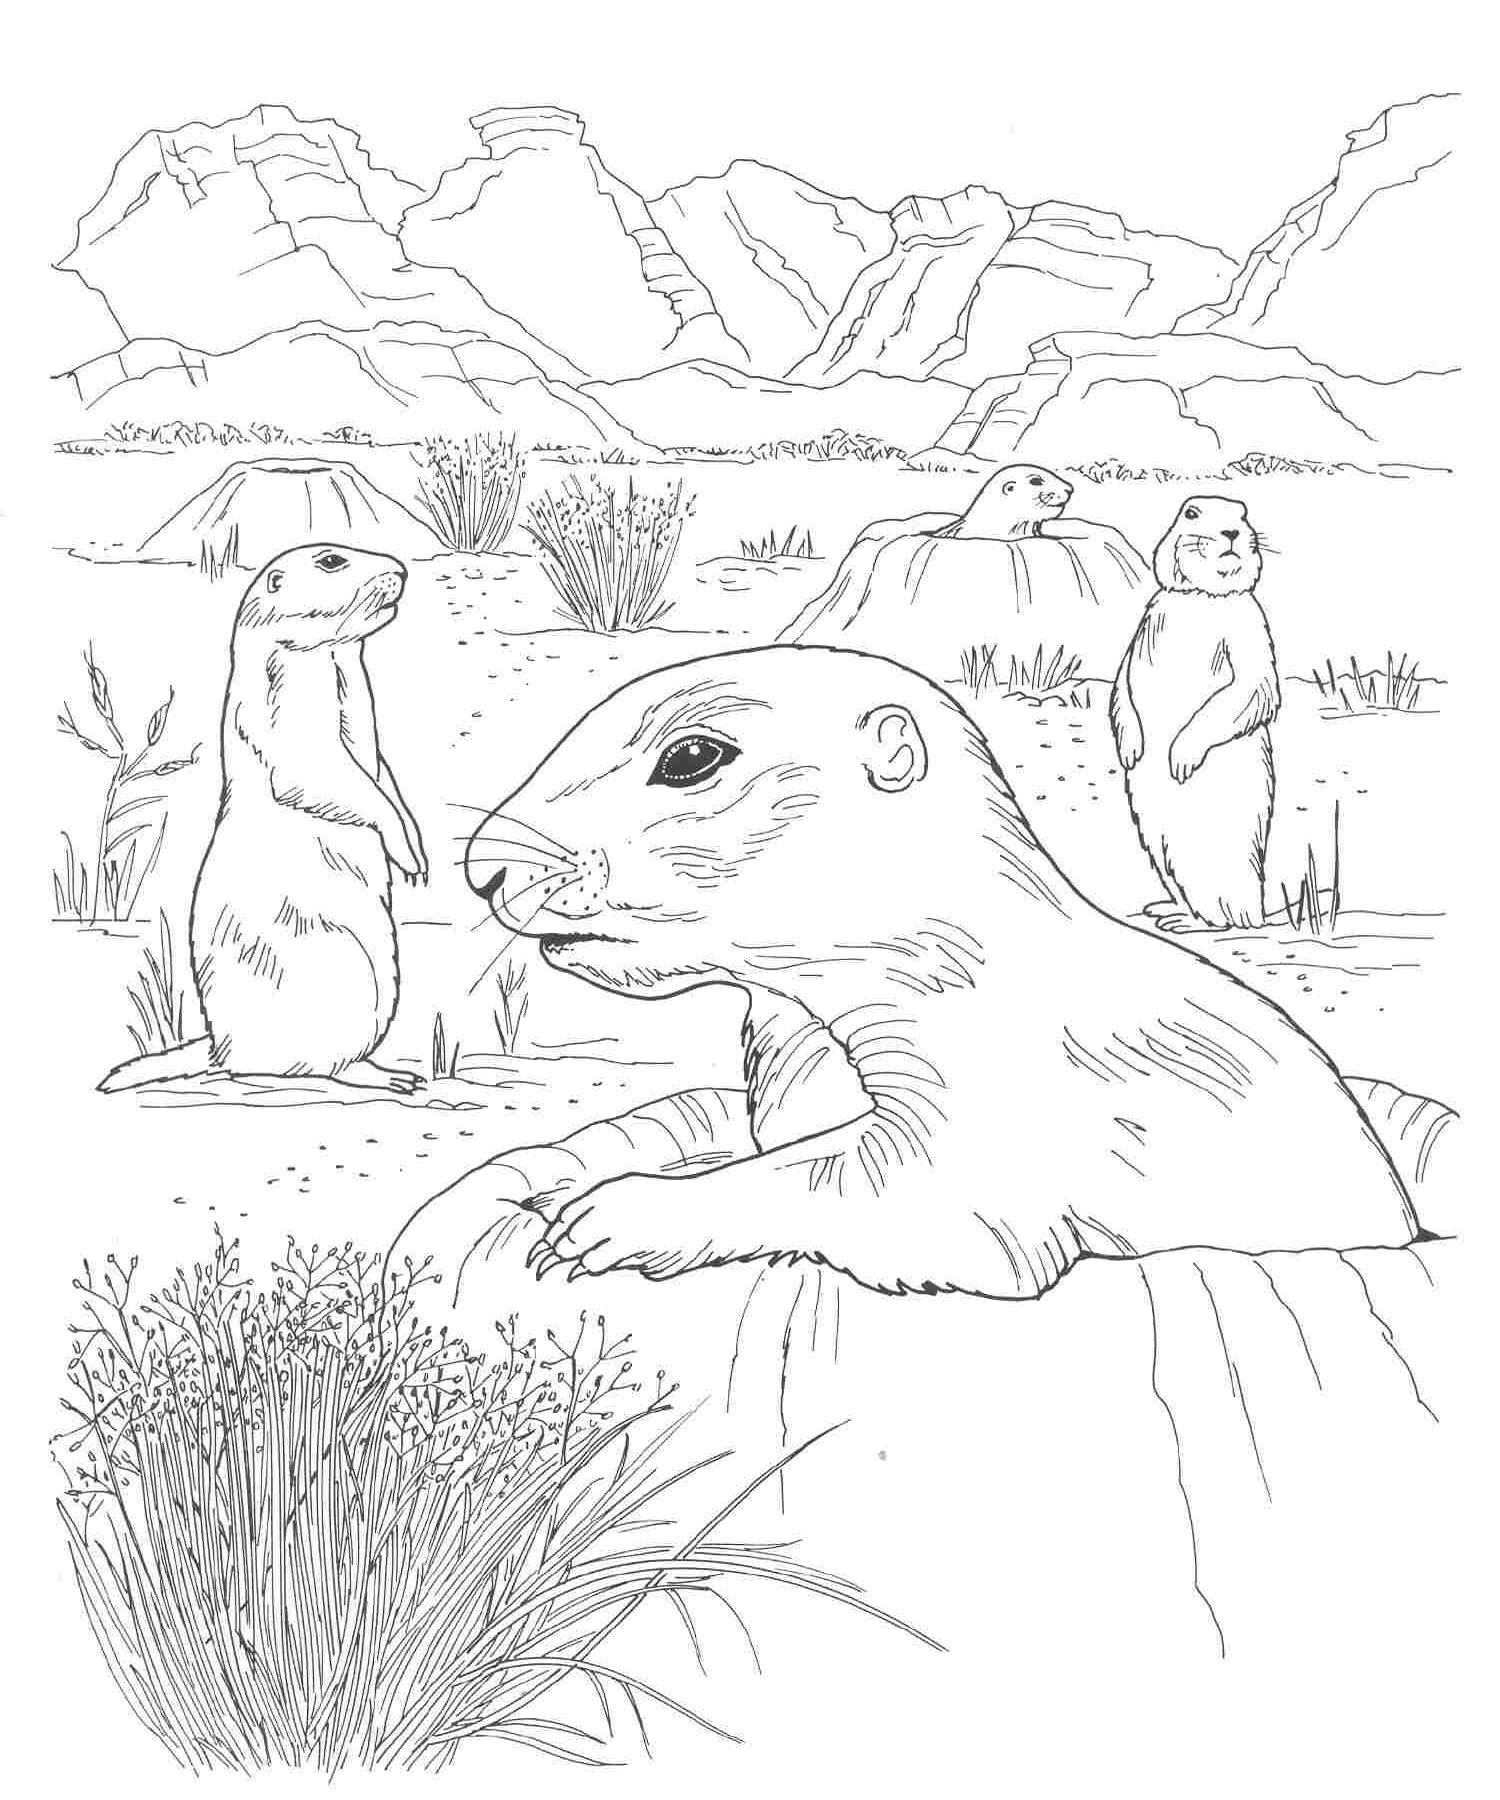 Desert Animals And Plants Coloring Pages Desert Animals Coloring Animal Coloring Pages Farm Animal Coloring Pages [ 1800 x 1500 Pixel ]